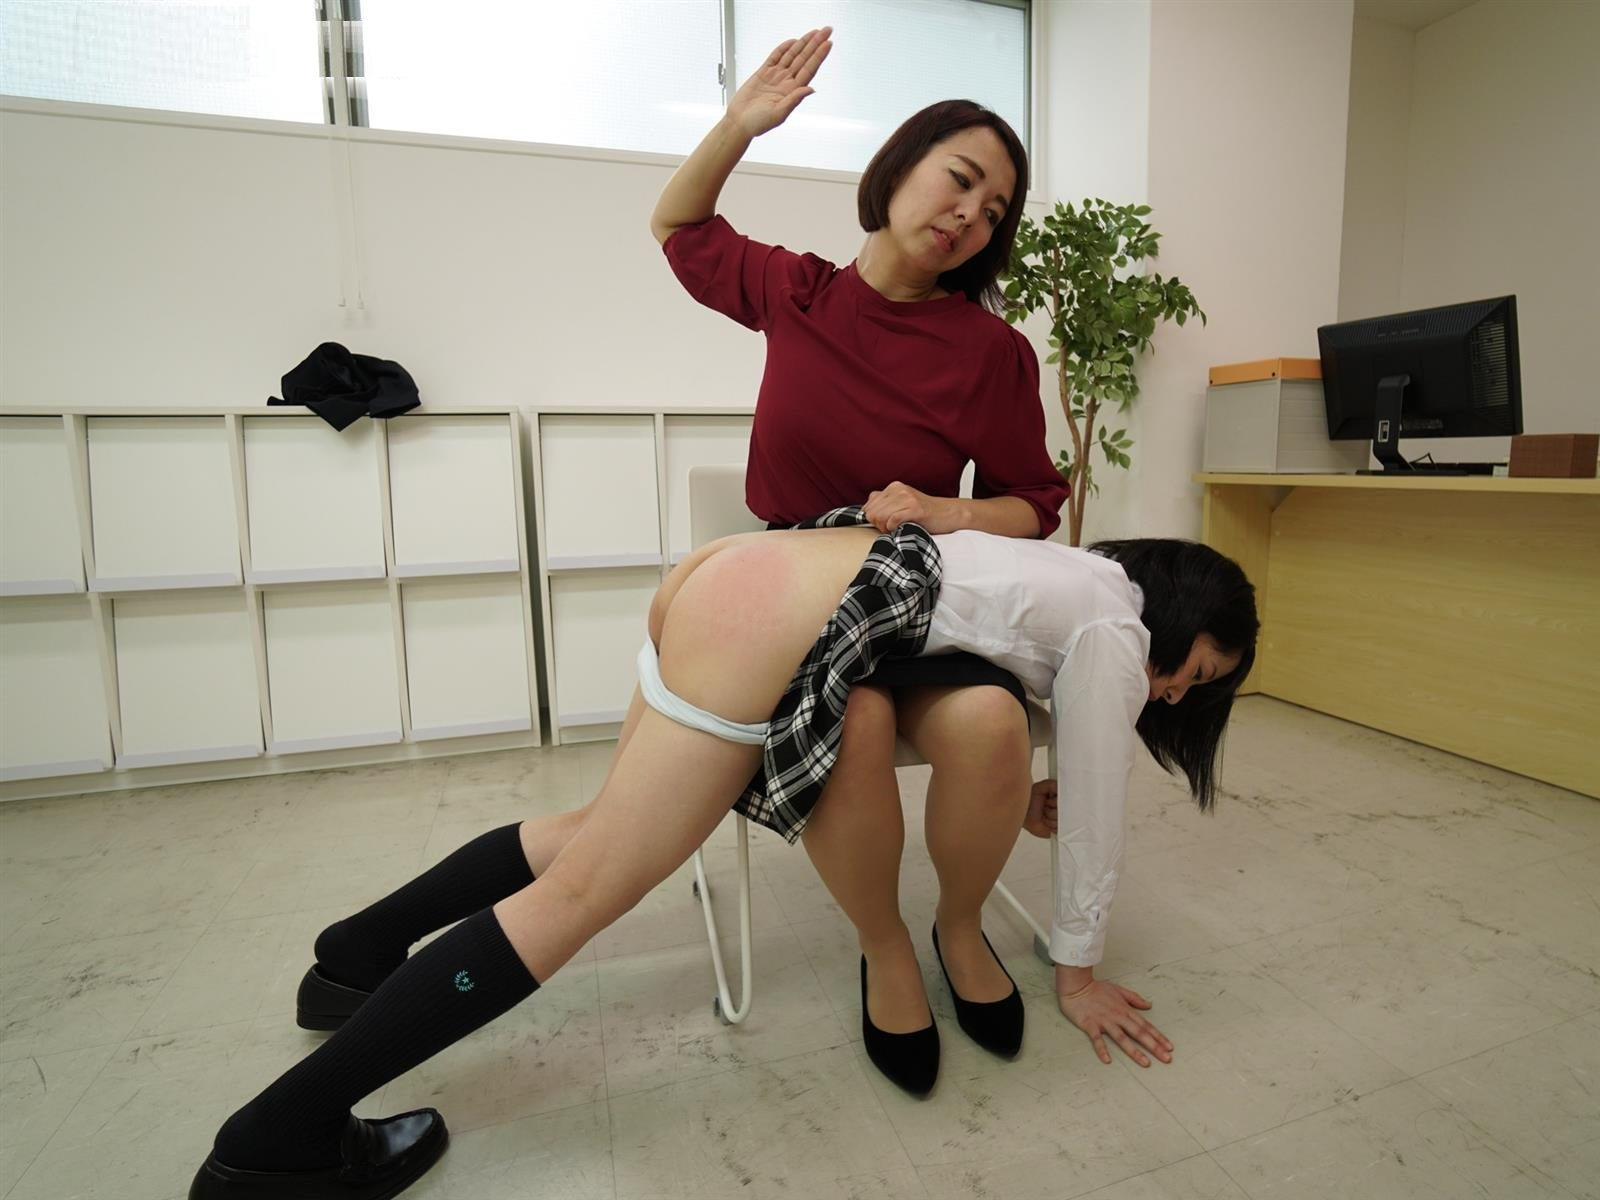 Japanese spanking 0438 Forgotten homework cost nao a good spanking hd